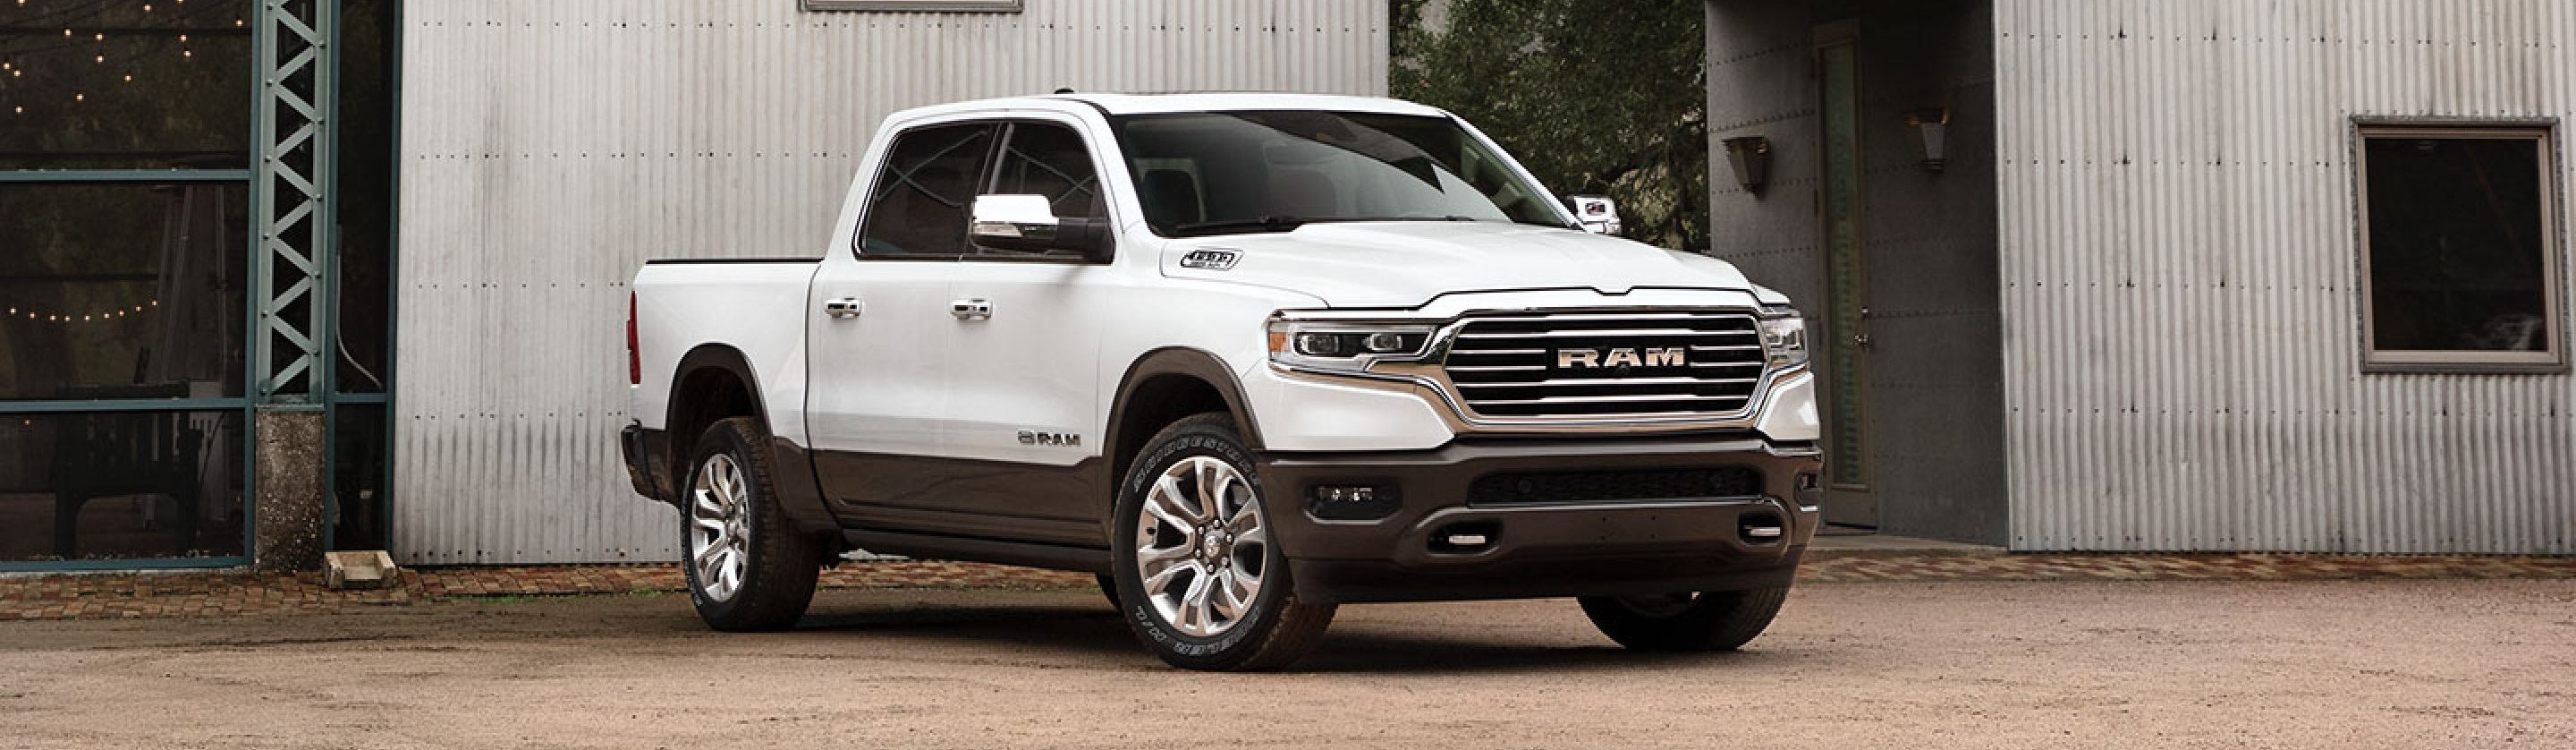 2020 Ram 1500 Key Features in Cookeville, TN